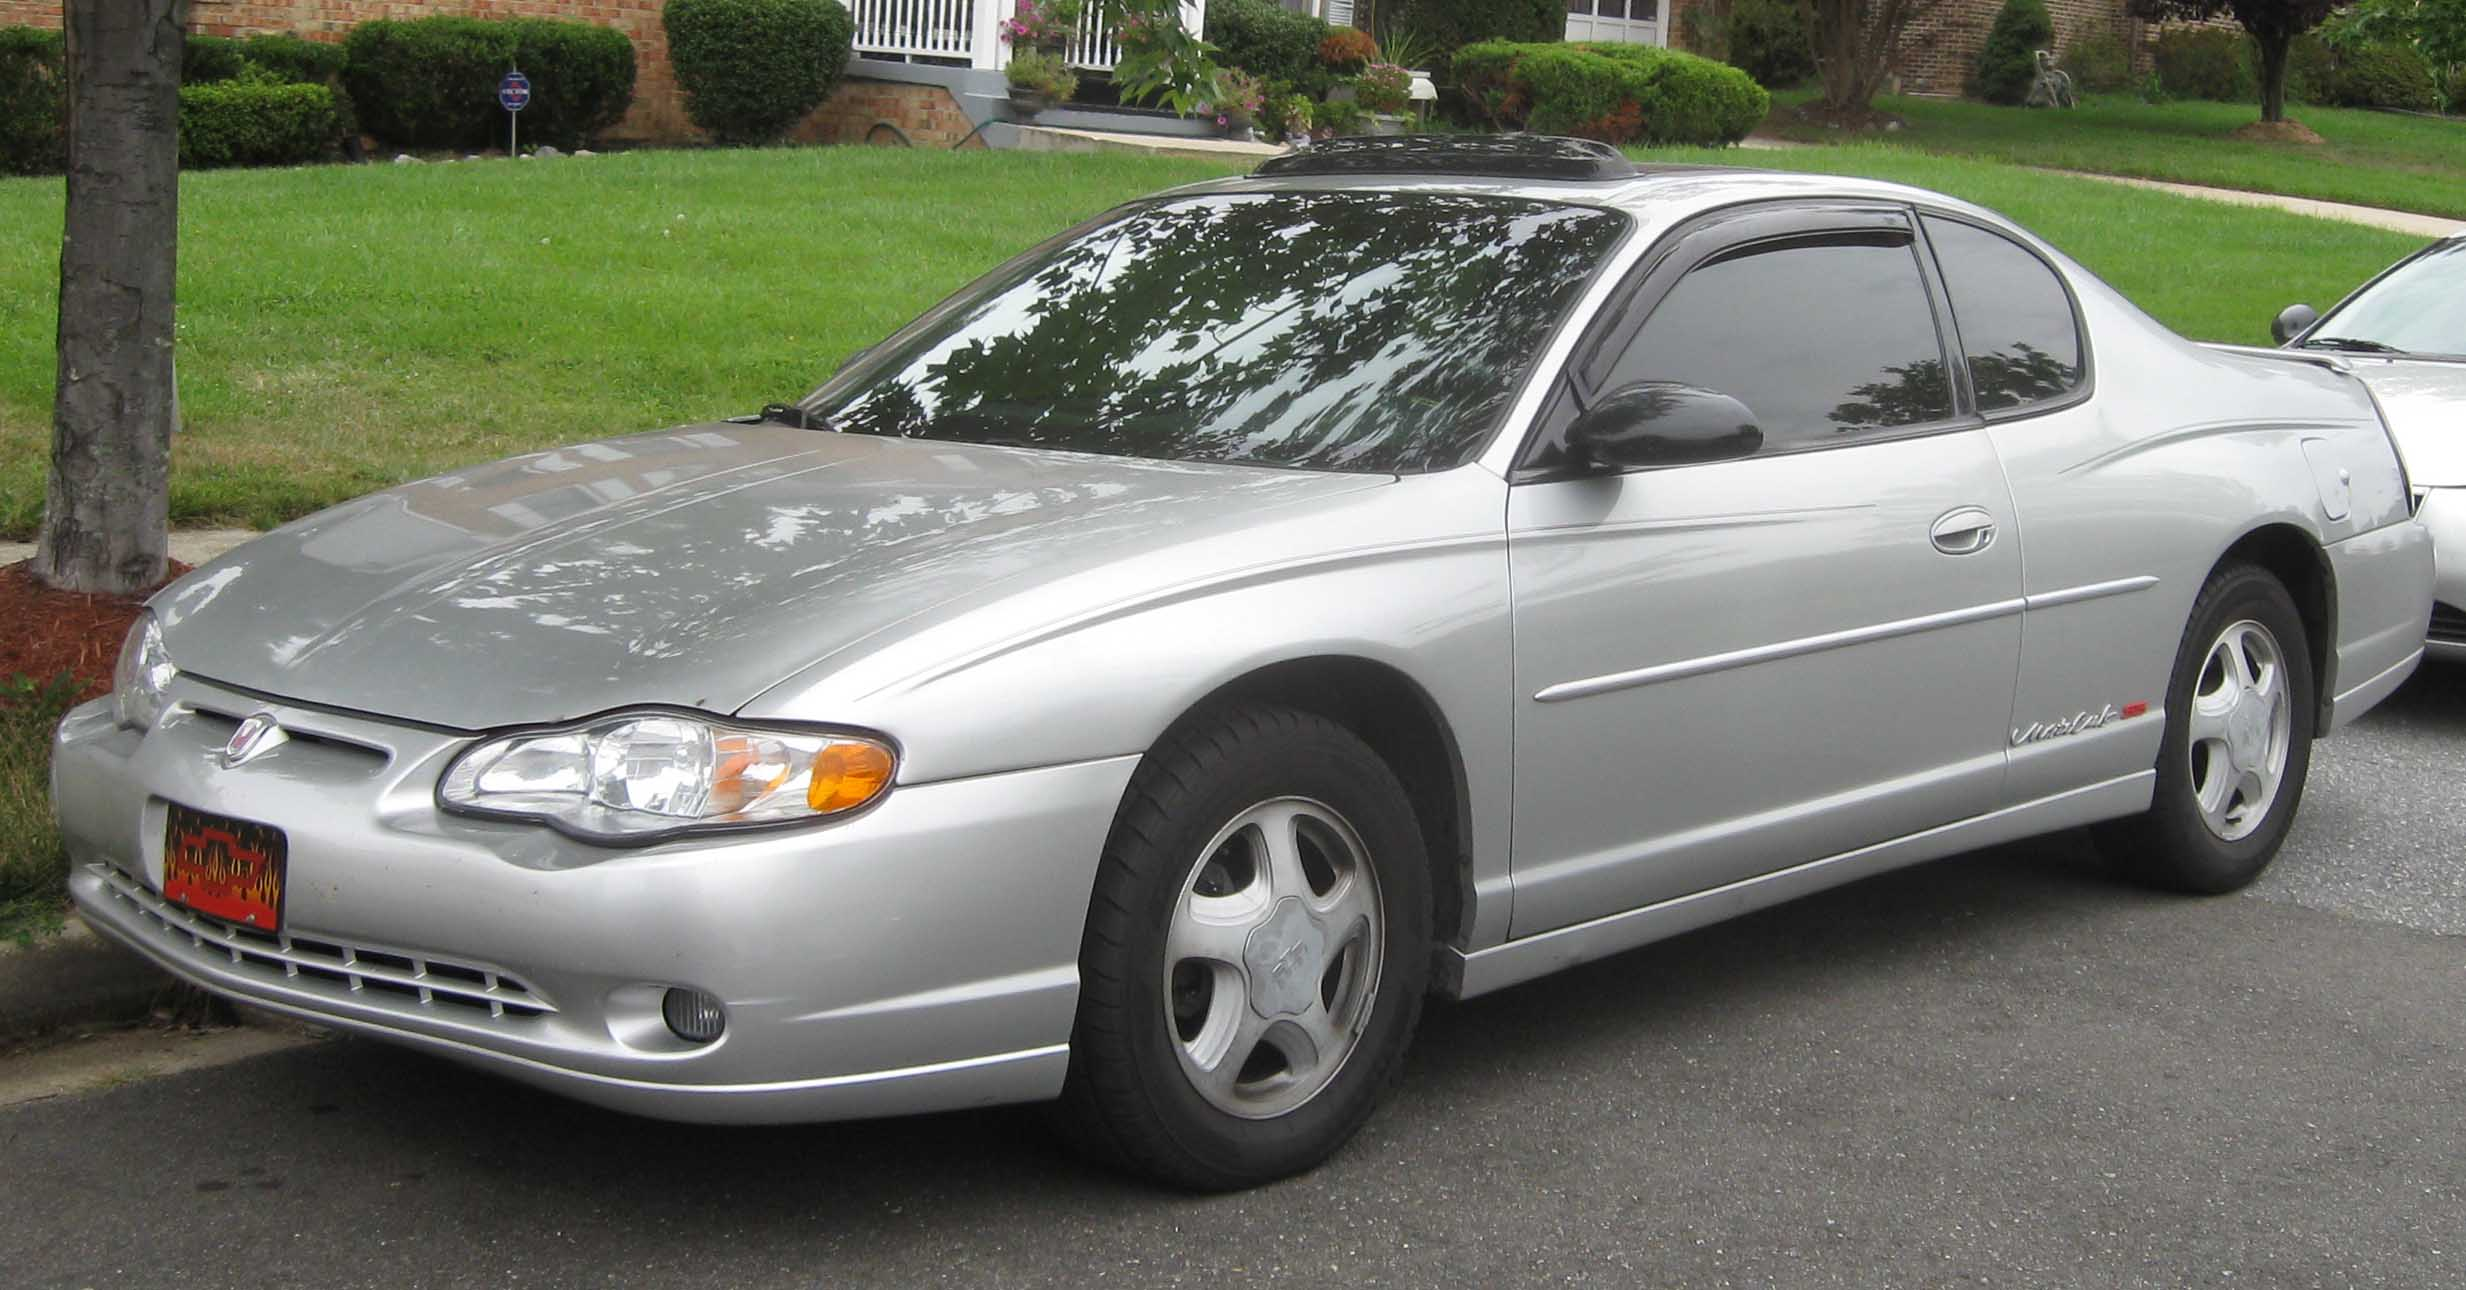 2000 Chevrolet Monte Carlo - Information and photos - ZombieDrive